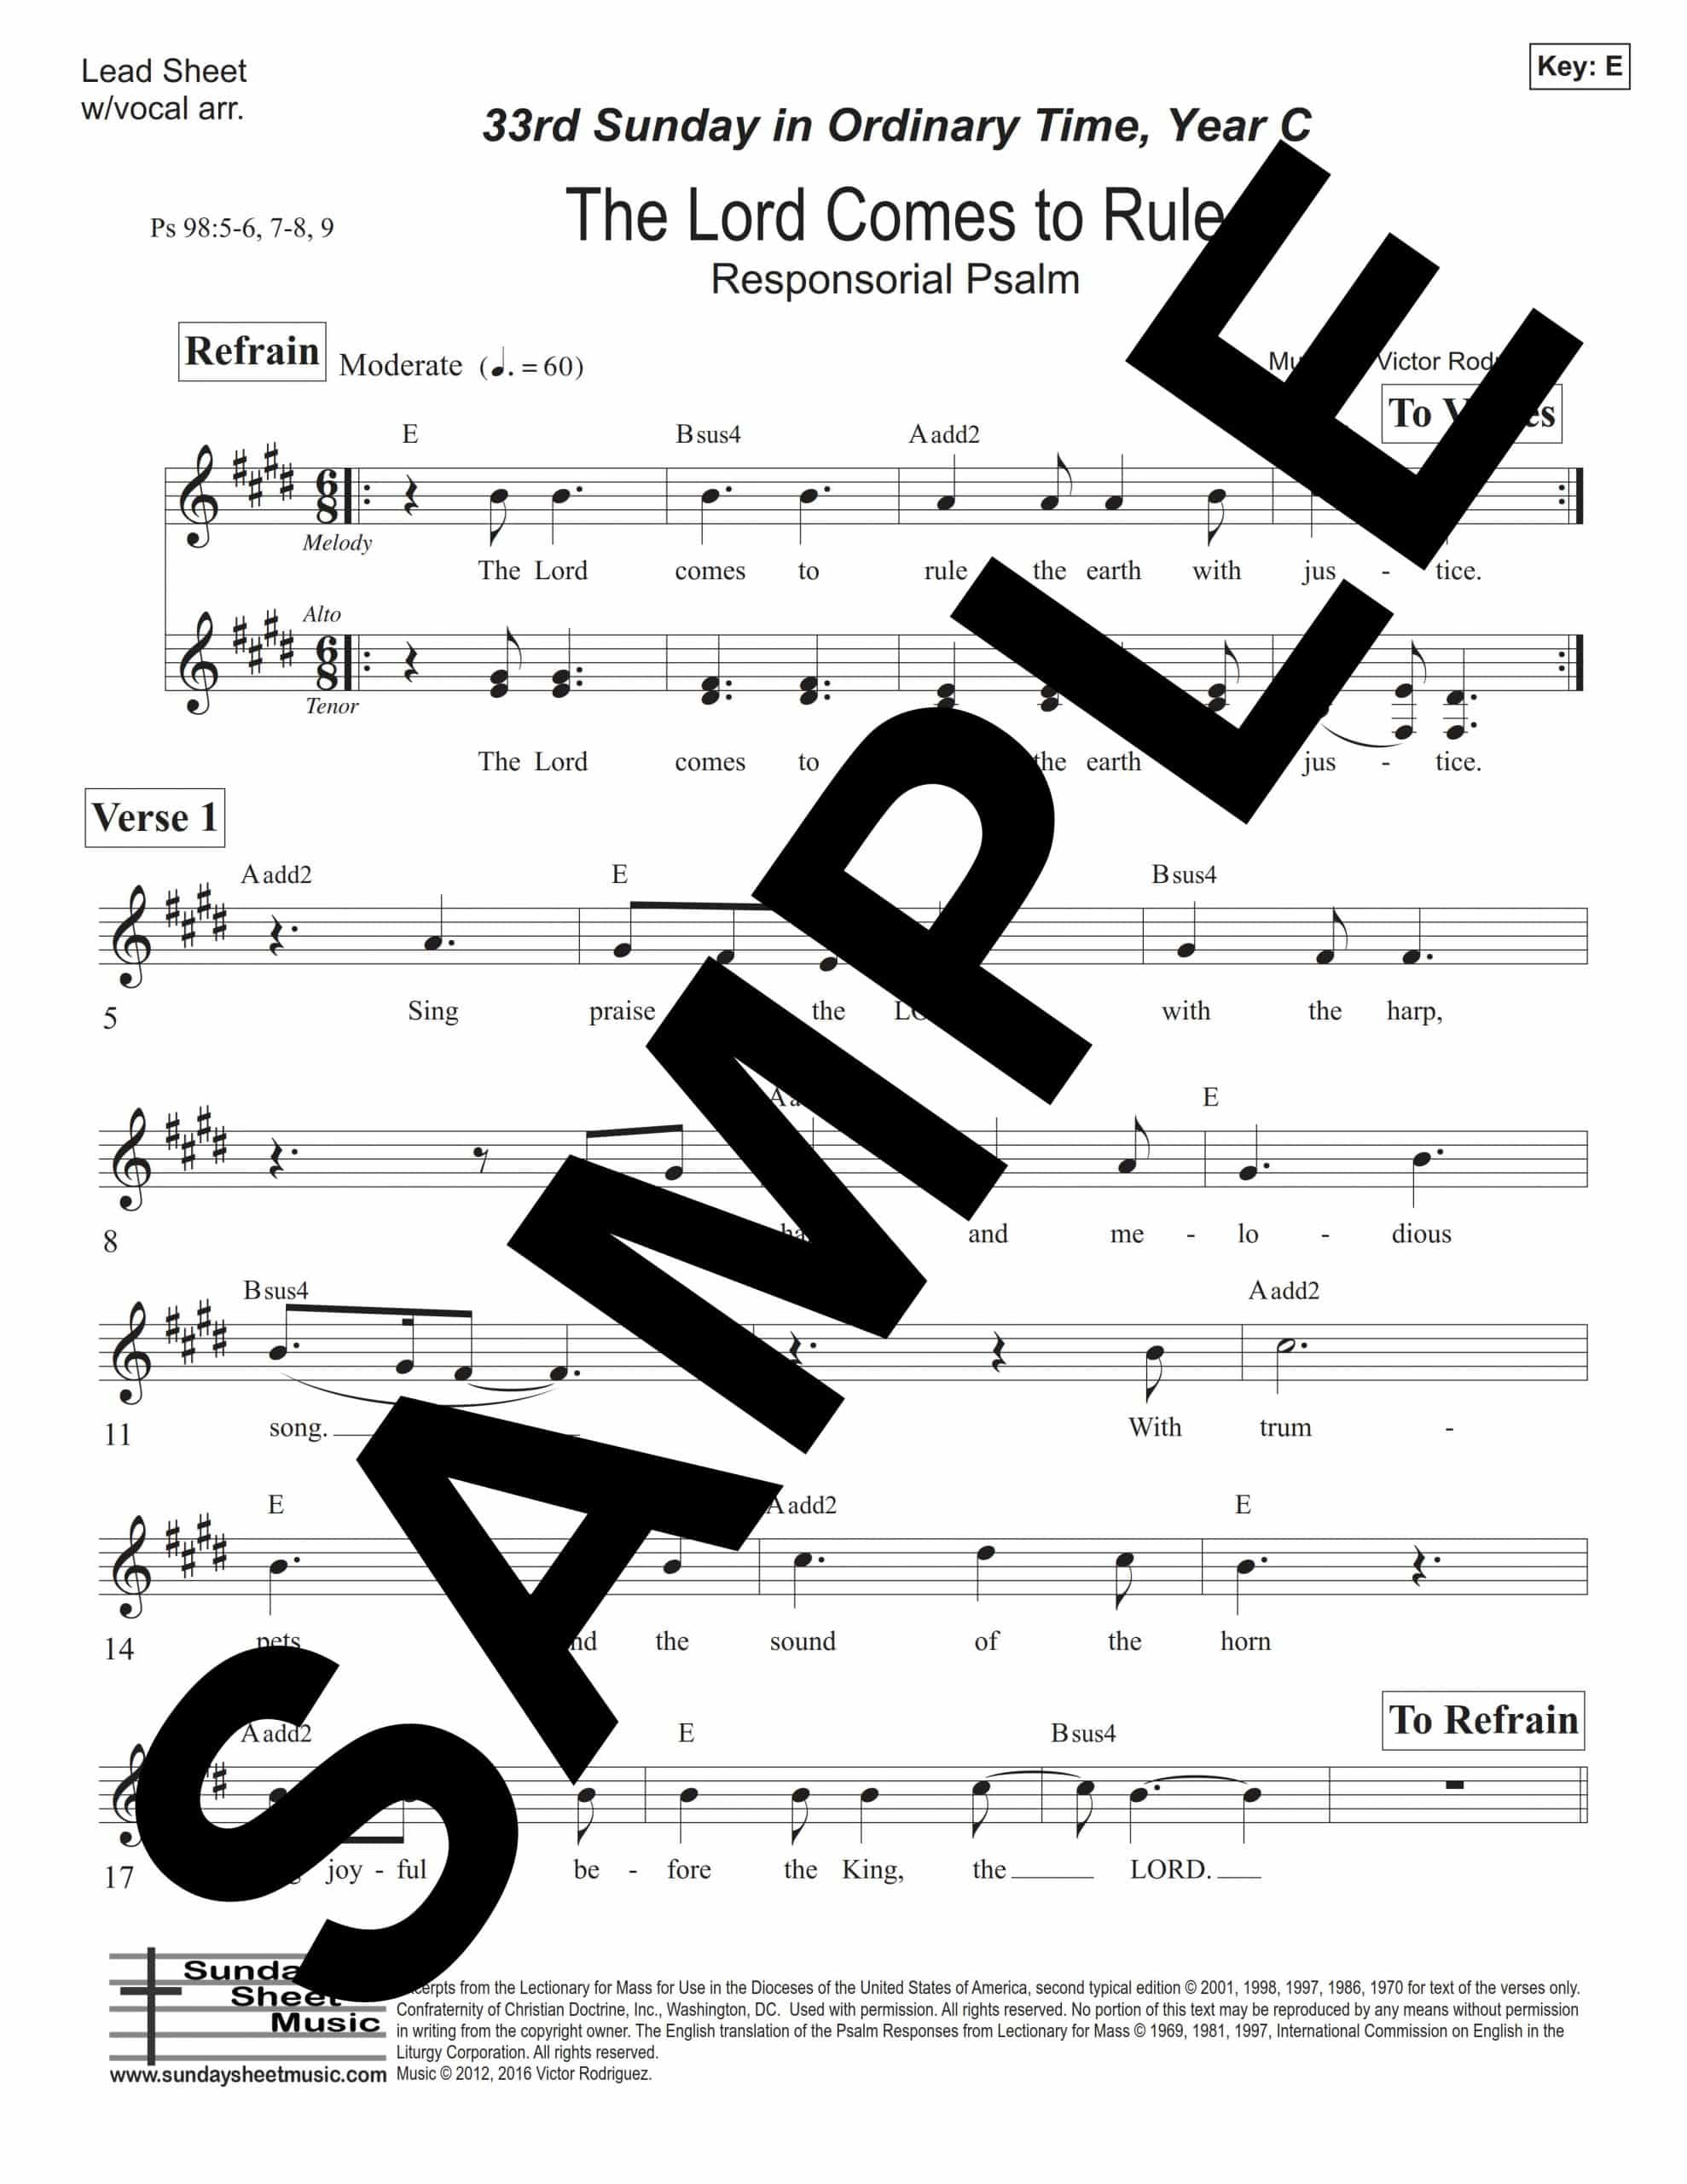 Psalm 98 The Lord Comes to Rule Rodriguez Sample Lead Sheet w vocal arr scaled